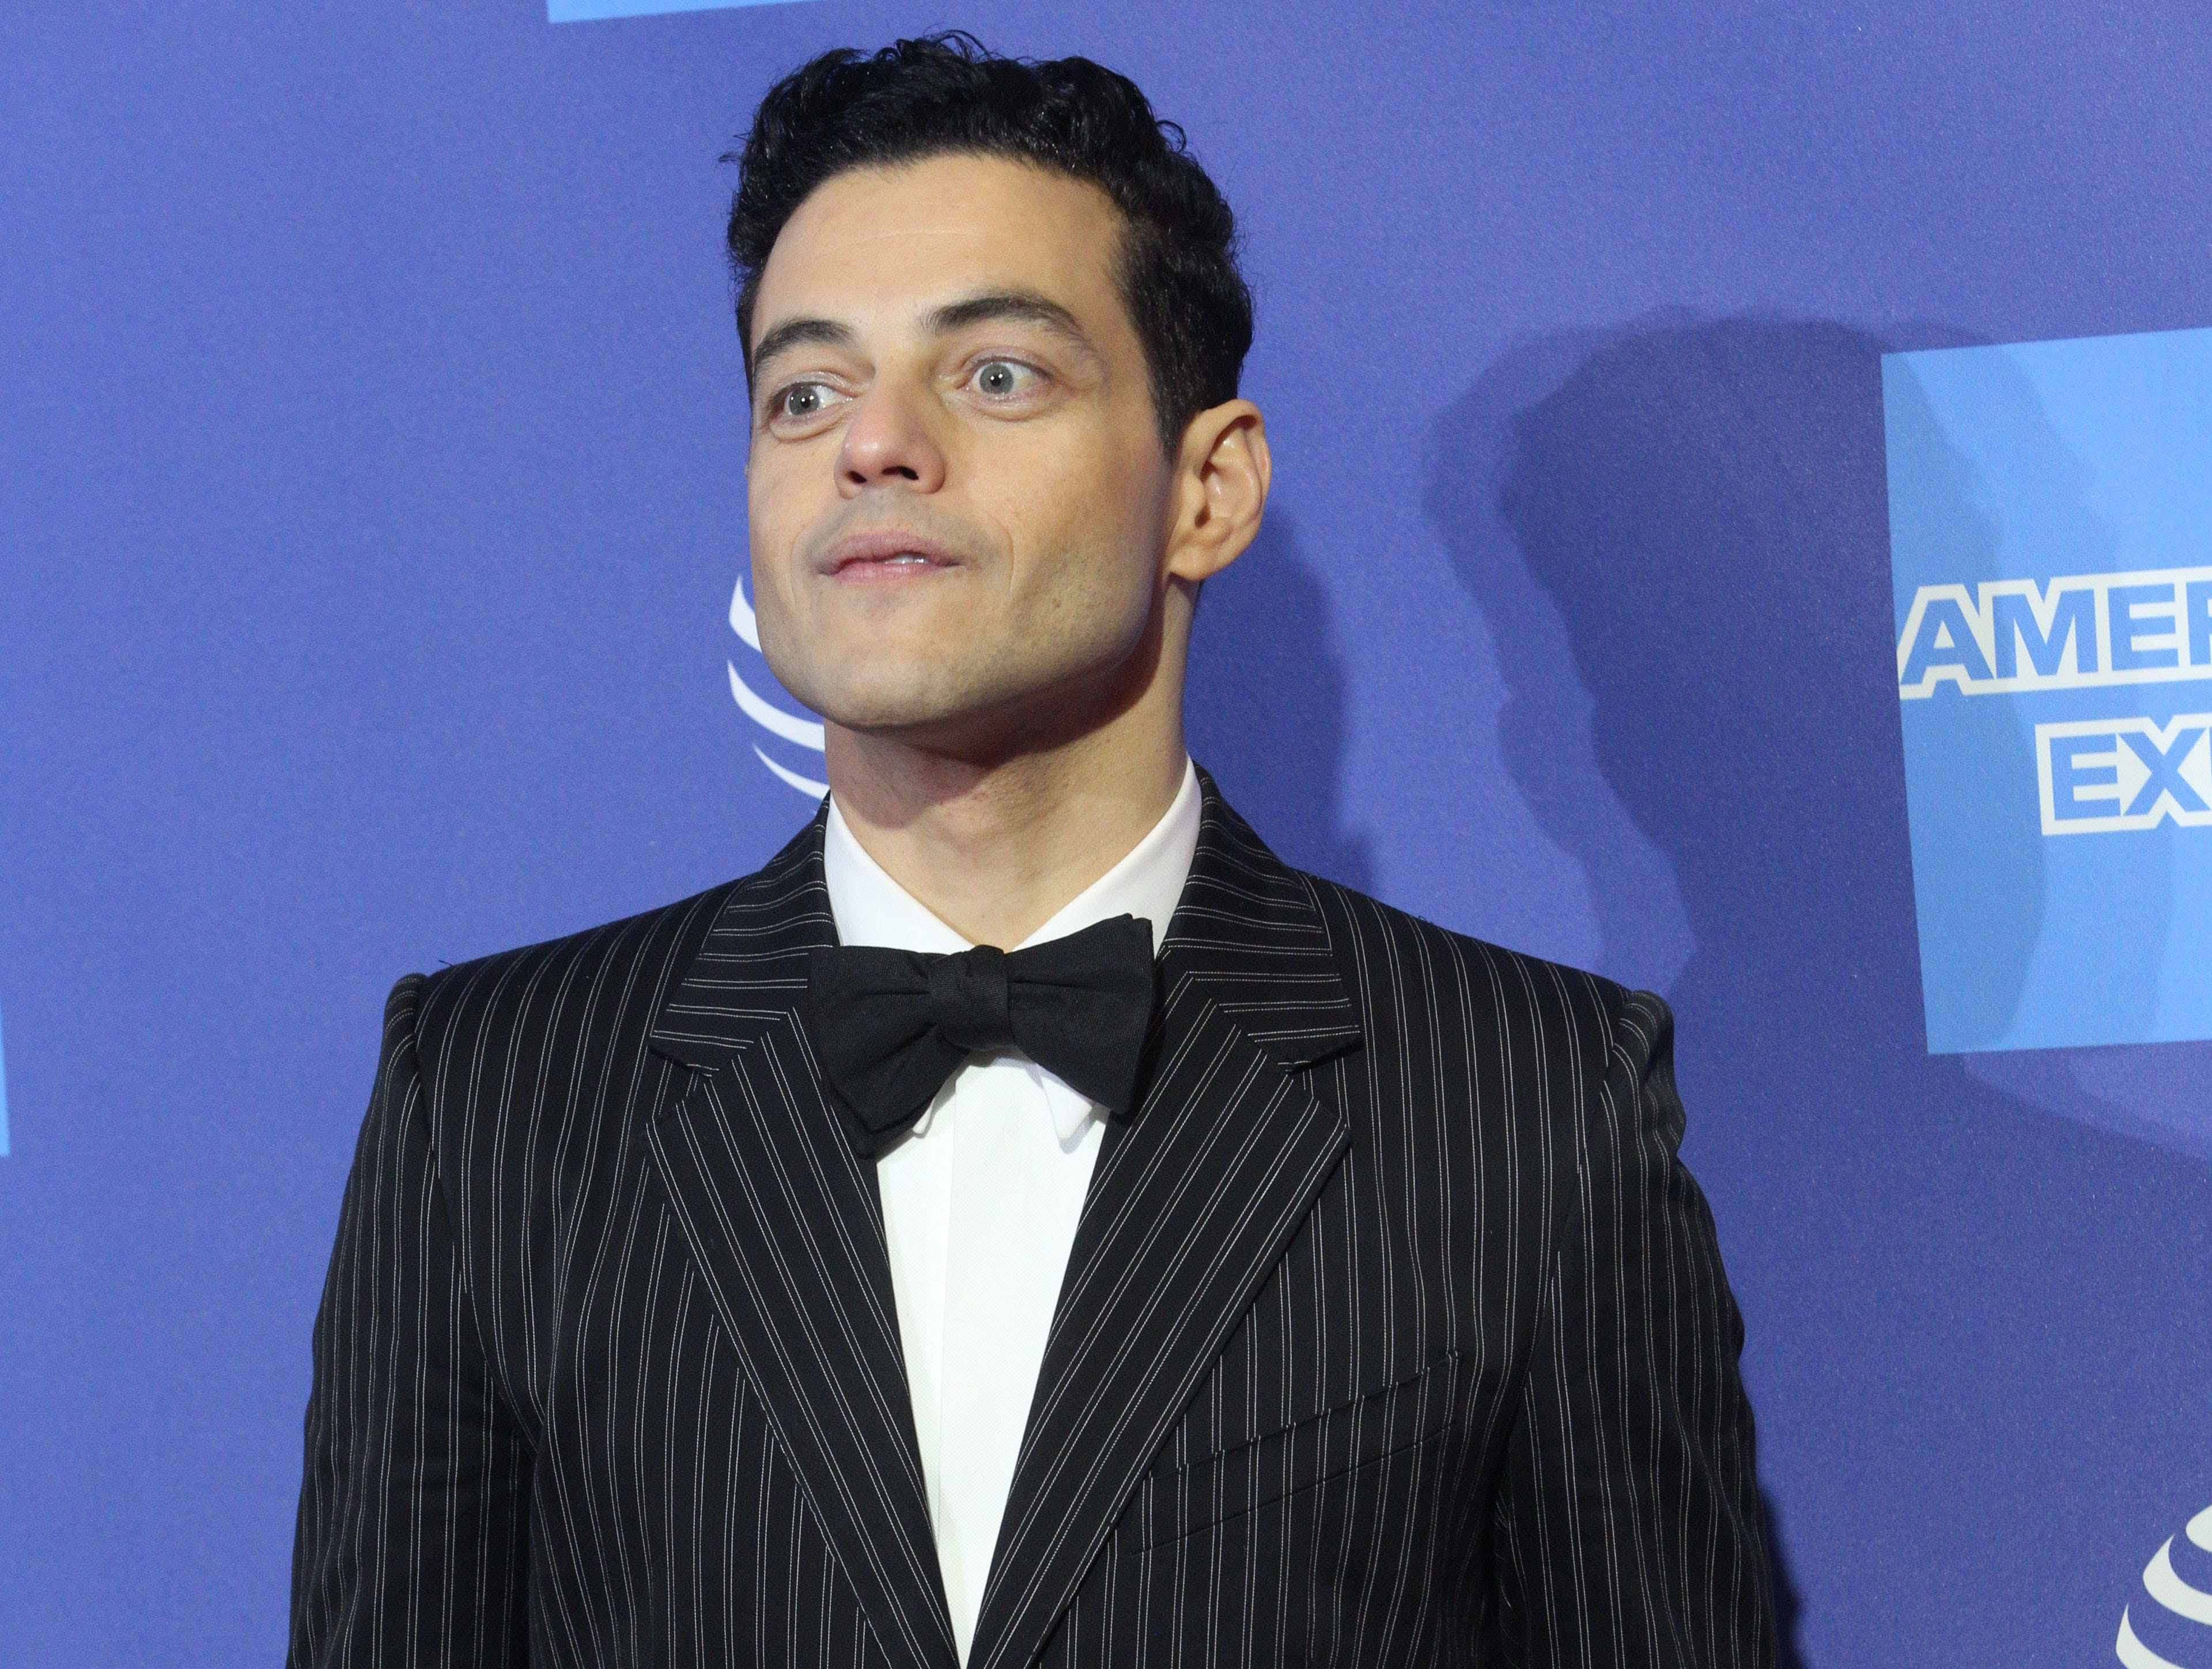 Rami Malek arrives on the red carpet during the 2019 Palm Springs International Film Festival at the Palm Springs Convention Center on January 3, 2019.